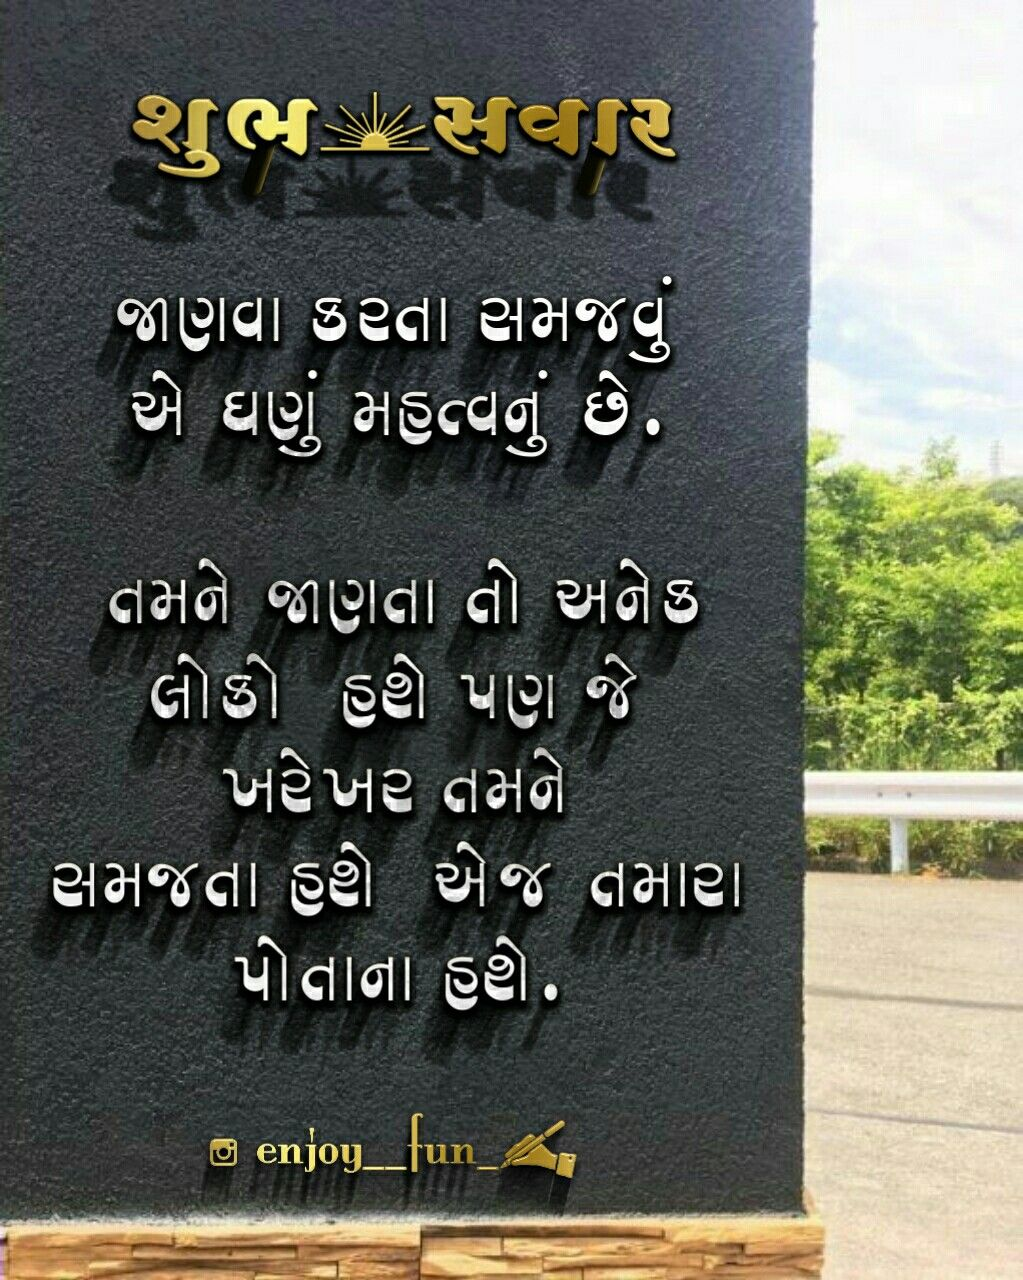 Gujarati Quotes & Thoughts | Motivational quotes for